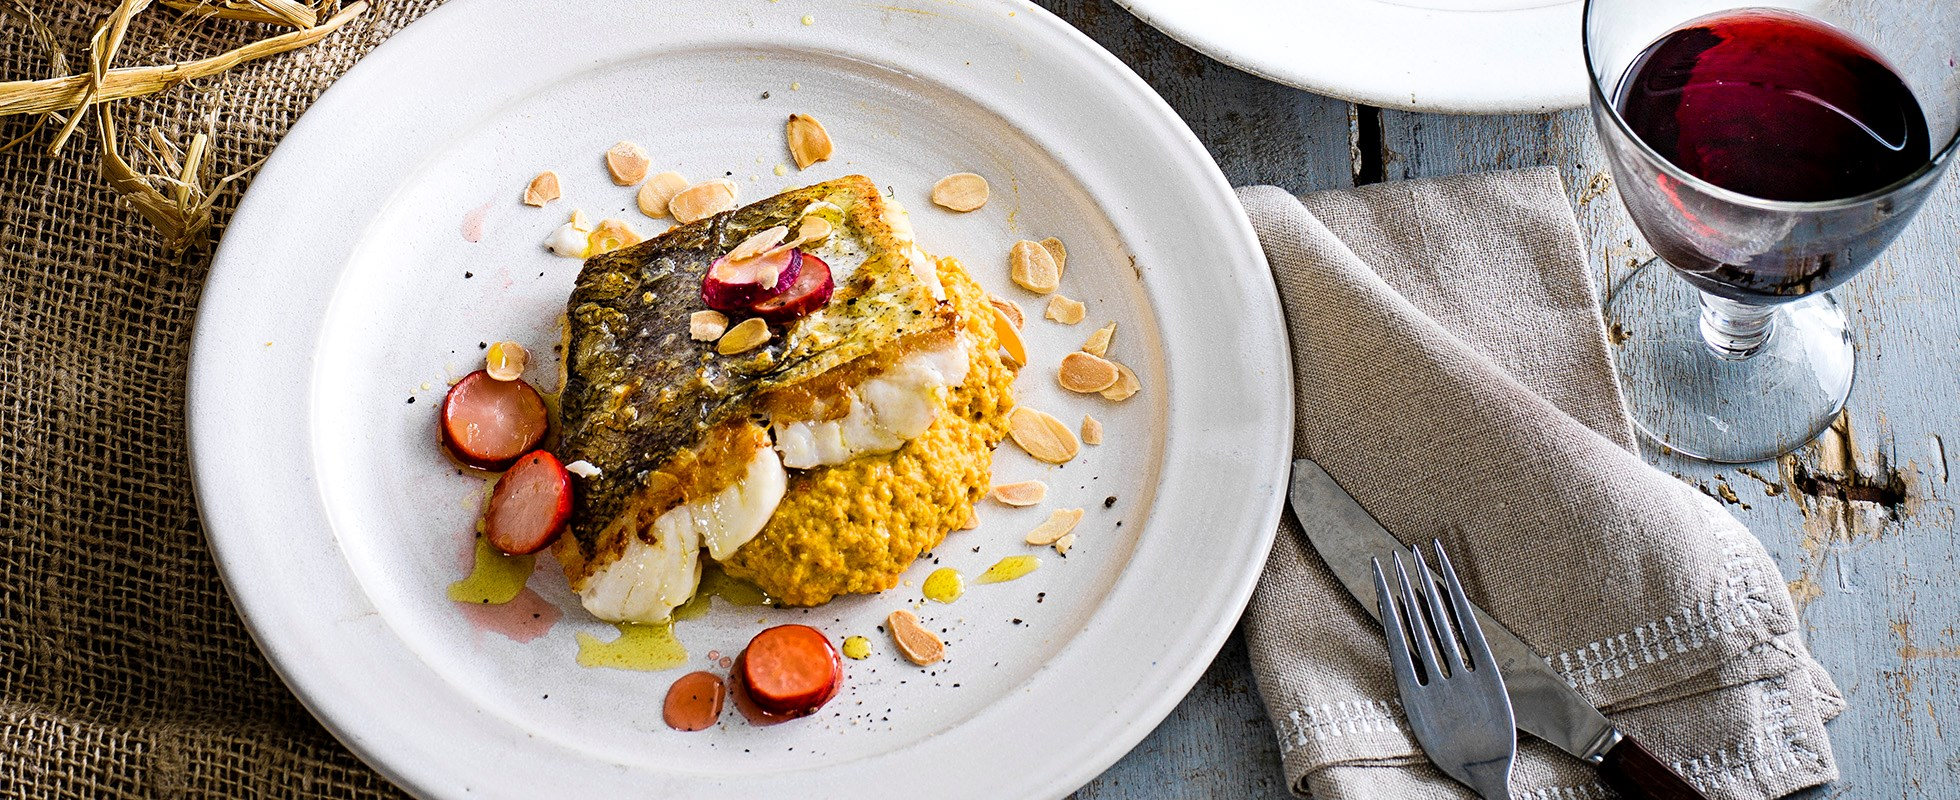 Squash, carrot and almond purée